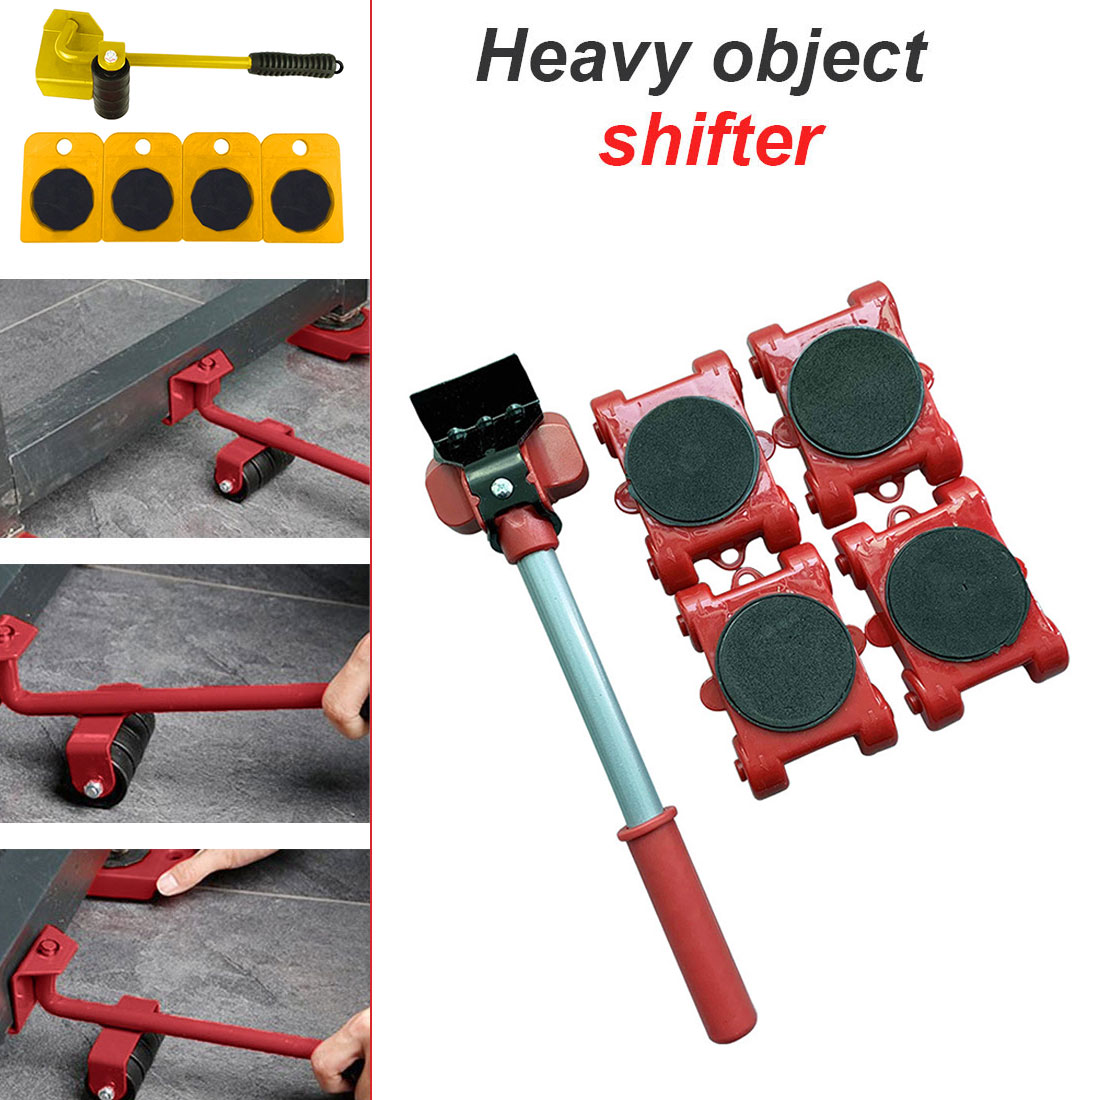 5Pcs Furniture Lifter Sliders Kit Profession Heavy Furniture Roller Move Tool Set Wheel Bar Mover Device Max Up For 150kg